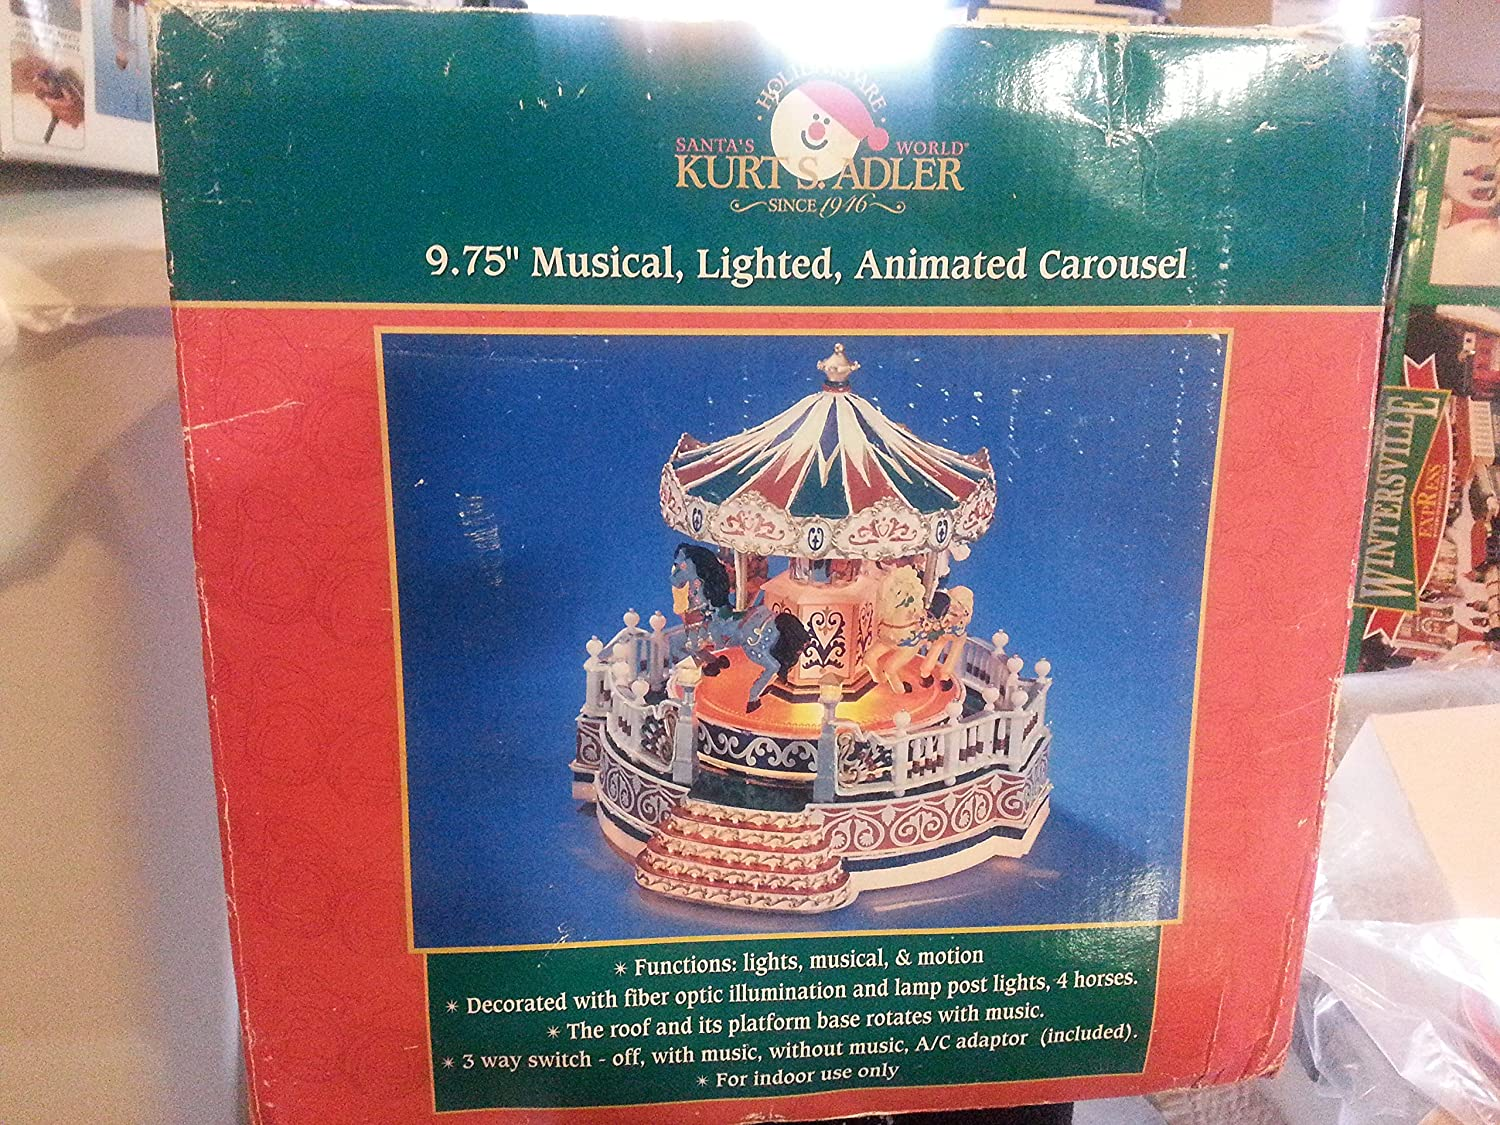 Kurts Adler 975 Musical Lighted Animated Carousel Three Way Switch Animation Kitchen Home